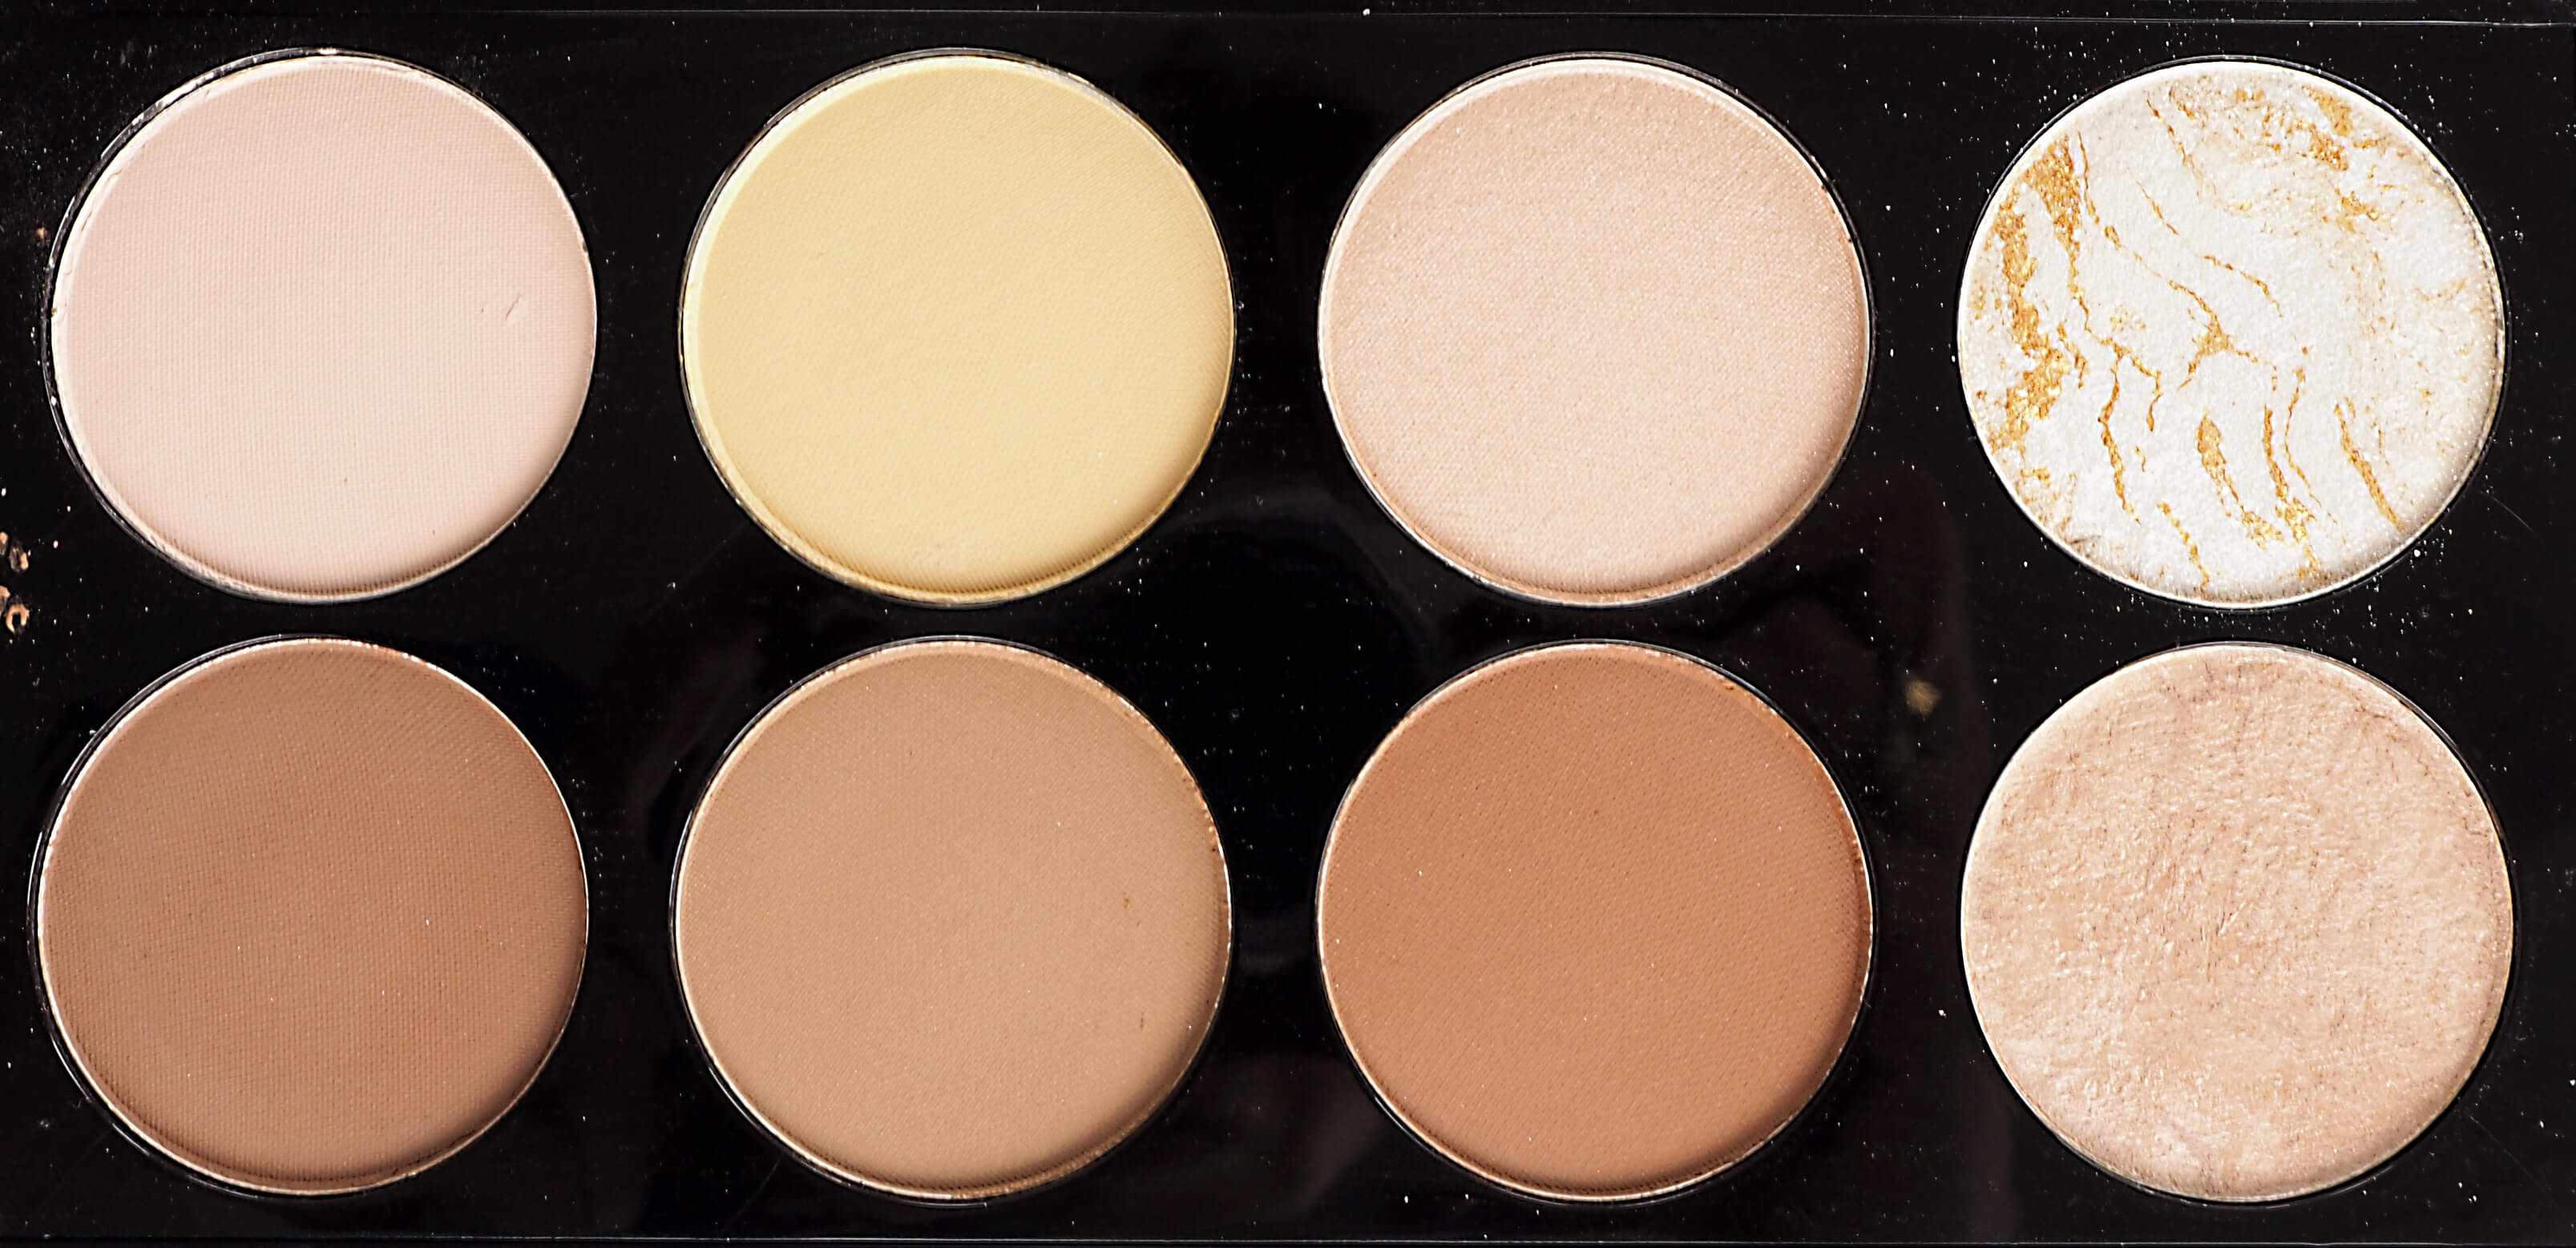 MAKEUP REVOLUTION ULTRA CONTOUR SWATCHES